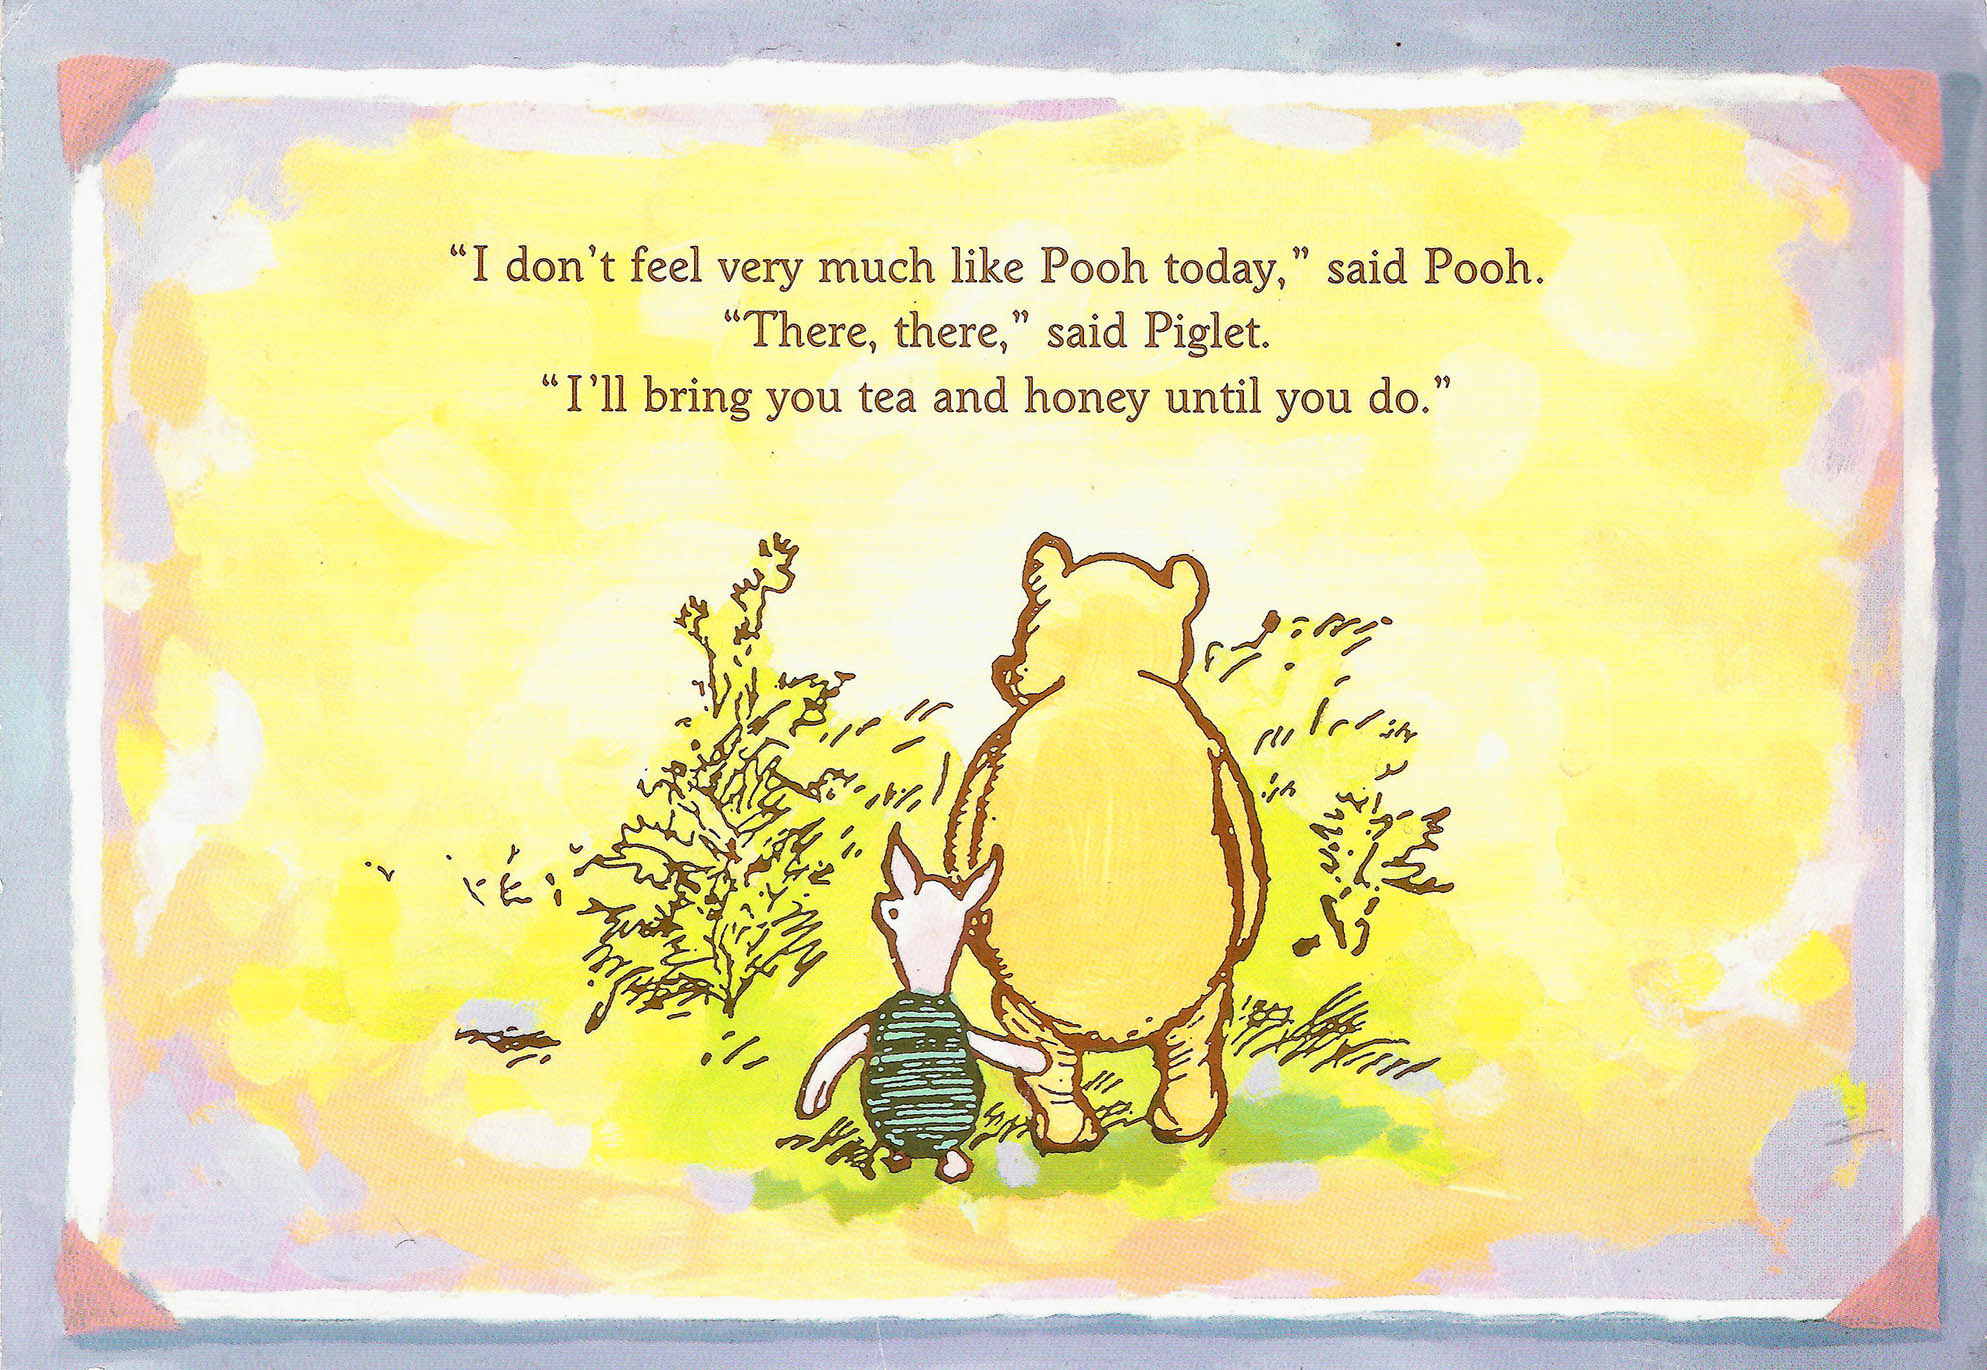 Quotes About Tea And Friendship Friendship Quotes Pooh And Piglet Pooh And Piglet On Tumblr.